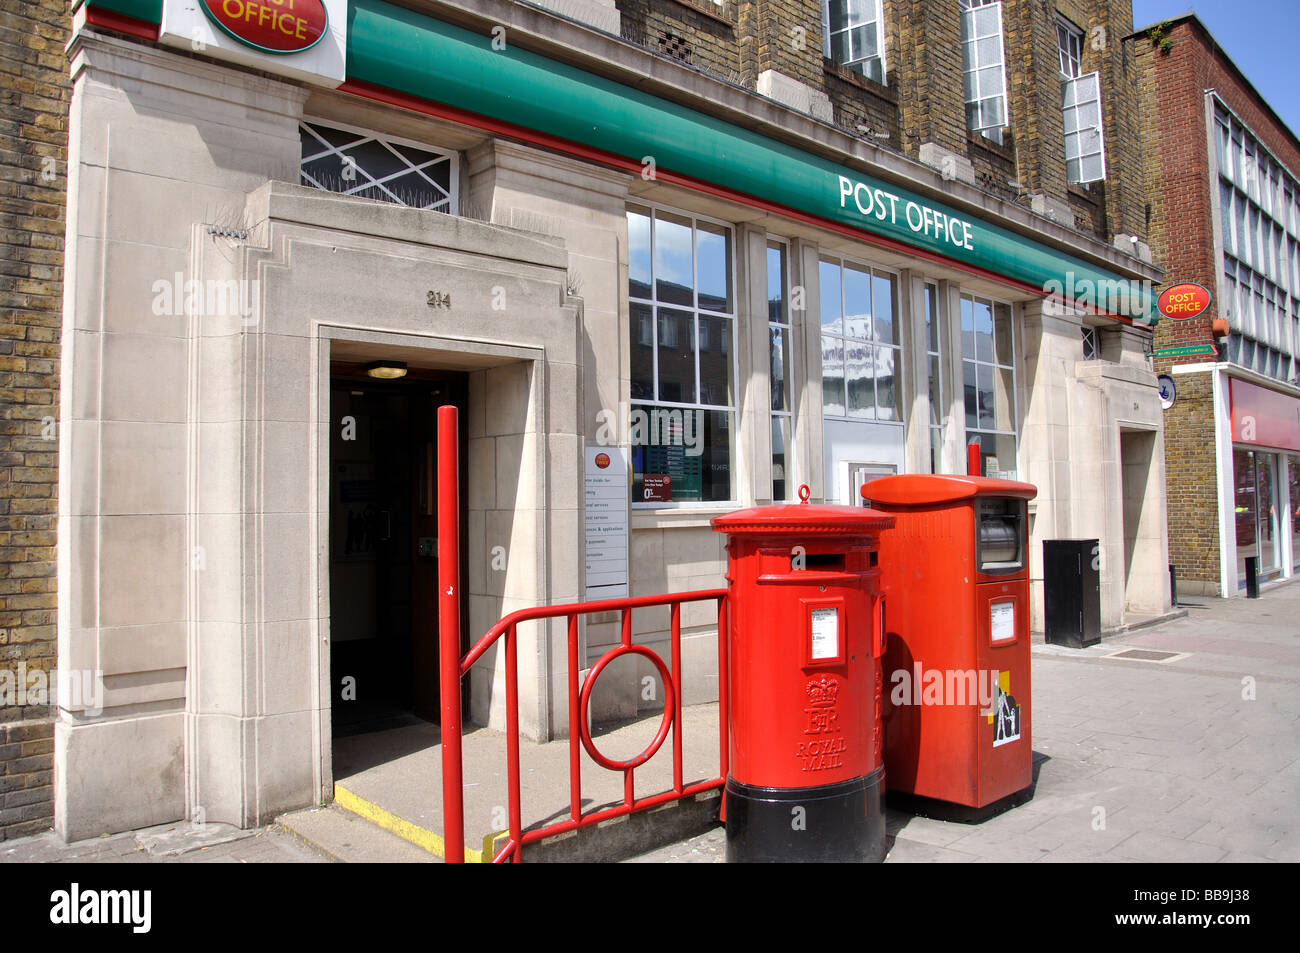 Post office high street orpington london borough of bromley stock photo royalty free image - Great britain post office ...